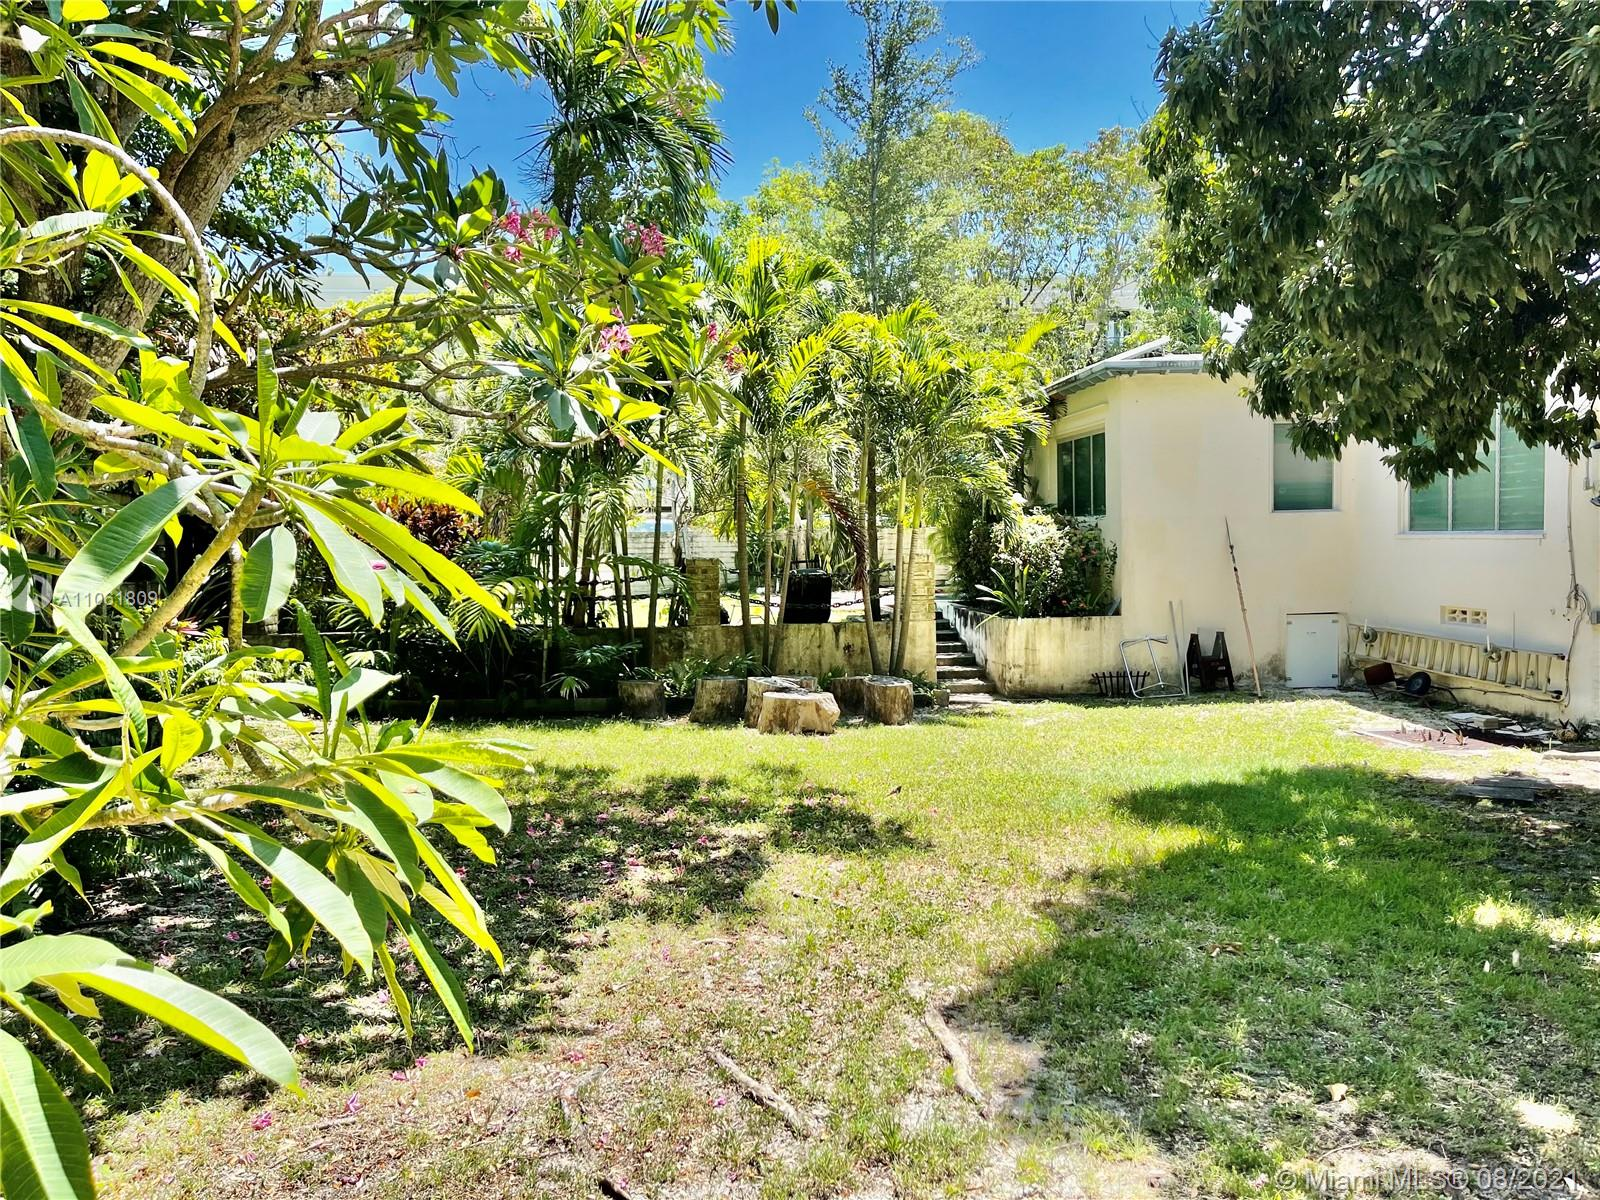 ELEVATION AND LOCATION! Perfectly situated 20 feet high on the coral rock ridge (Miami's highest point) is this intact 1400 sq ft 1940's  bungalow on very large lot (9375 sq ft). Truly the best of both worlds, less than 1/2 a mile to magical Biscayne Bay, (yet not in a flood zone) marinas, watersports, Monty Trainer's and Starbucks. And also in the opposite direction less than 1/2 mile to the Metrorail with direct routes to the airport, Brickell, the heart of downtown Miami, Coral Gables, U.M., Dadeland and beyond. Renovate and add on to the small existing house which  or build a big new dream house! Showings of outside only until the open house on Sunday July 11 th 1:00-4:30 Showings of the lot only by appointment and then an open house will be held on Sunday July 11th from 1:00 - 4:30.